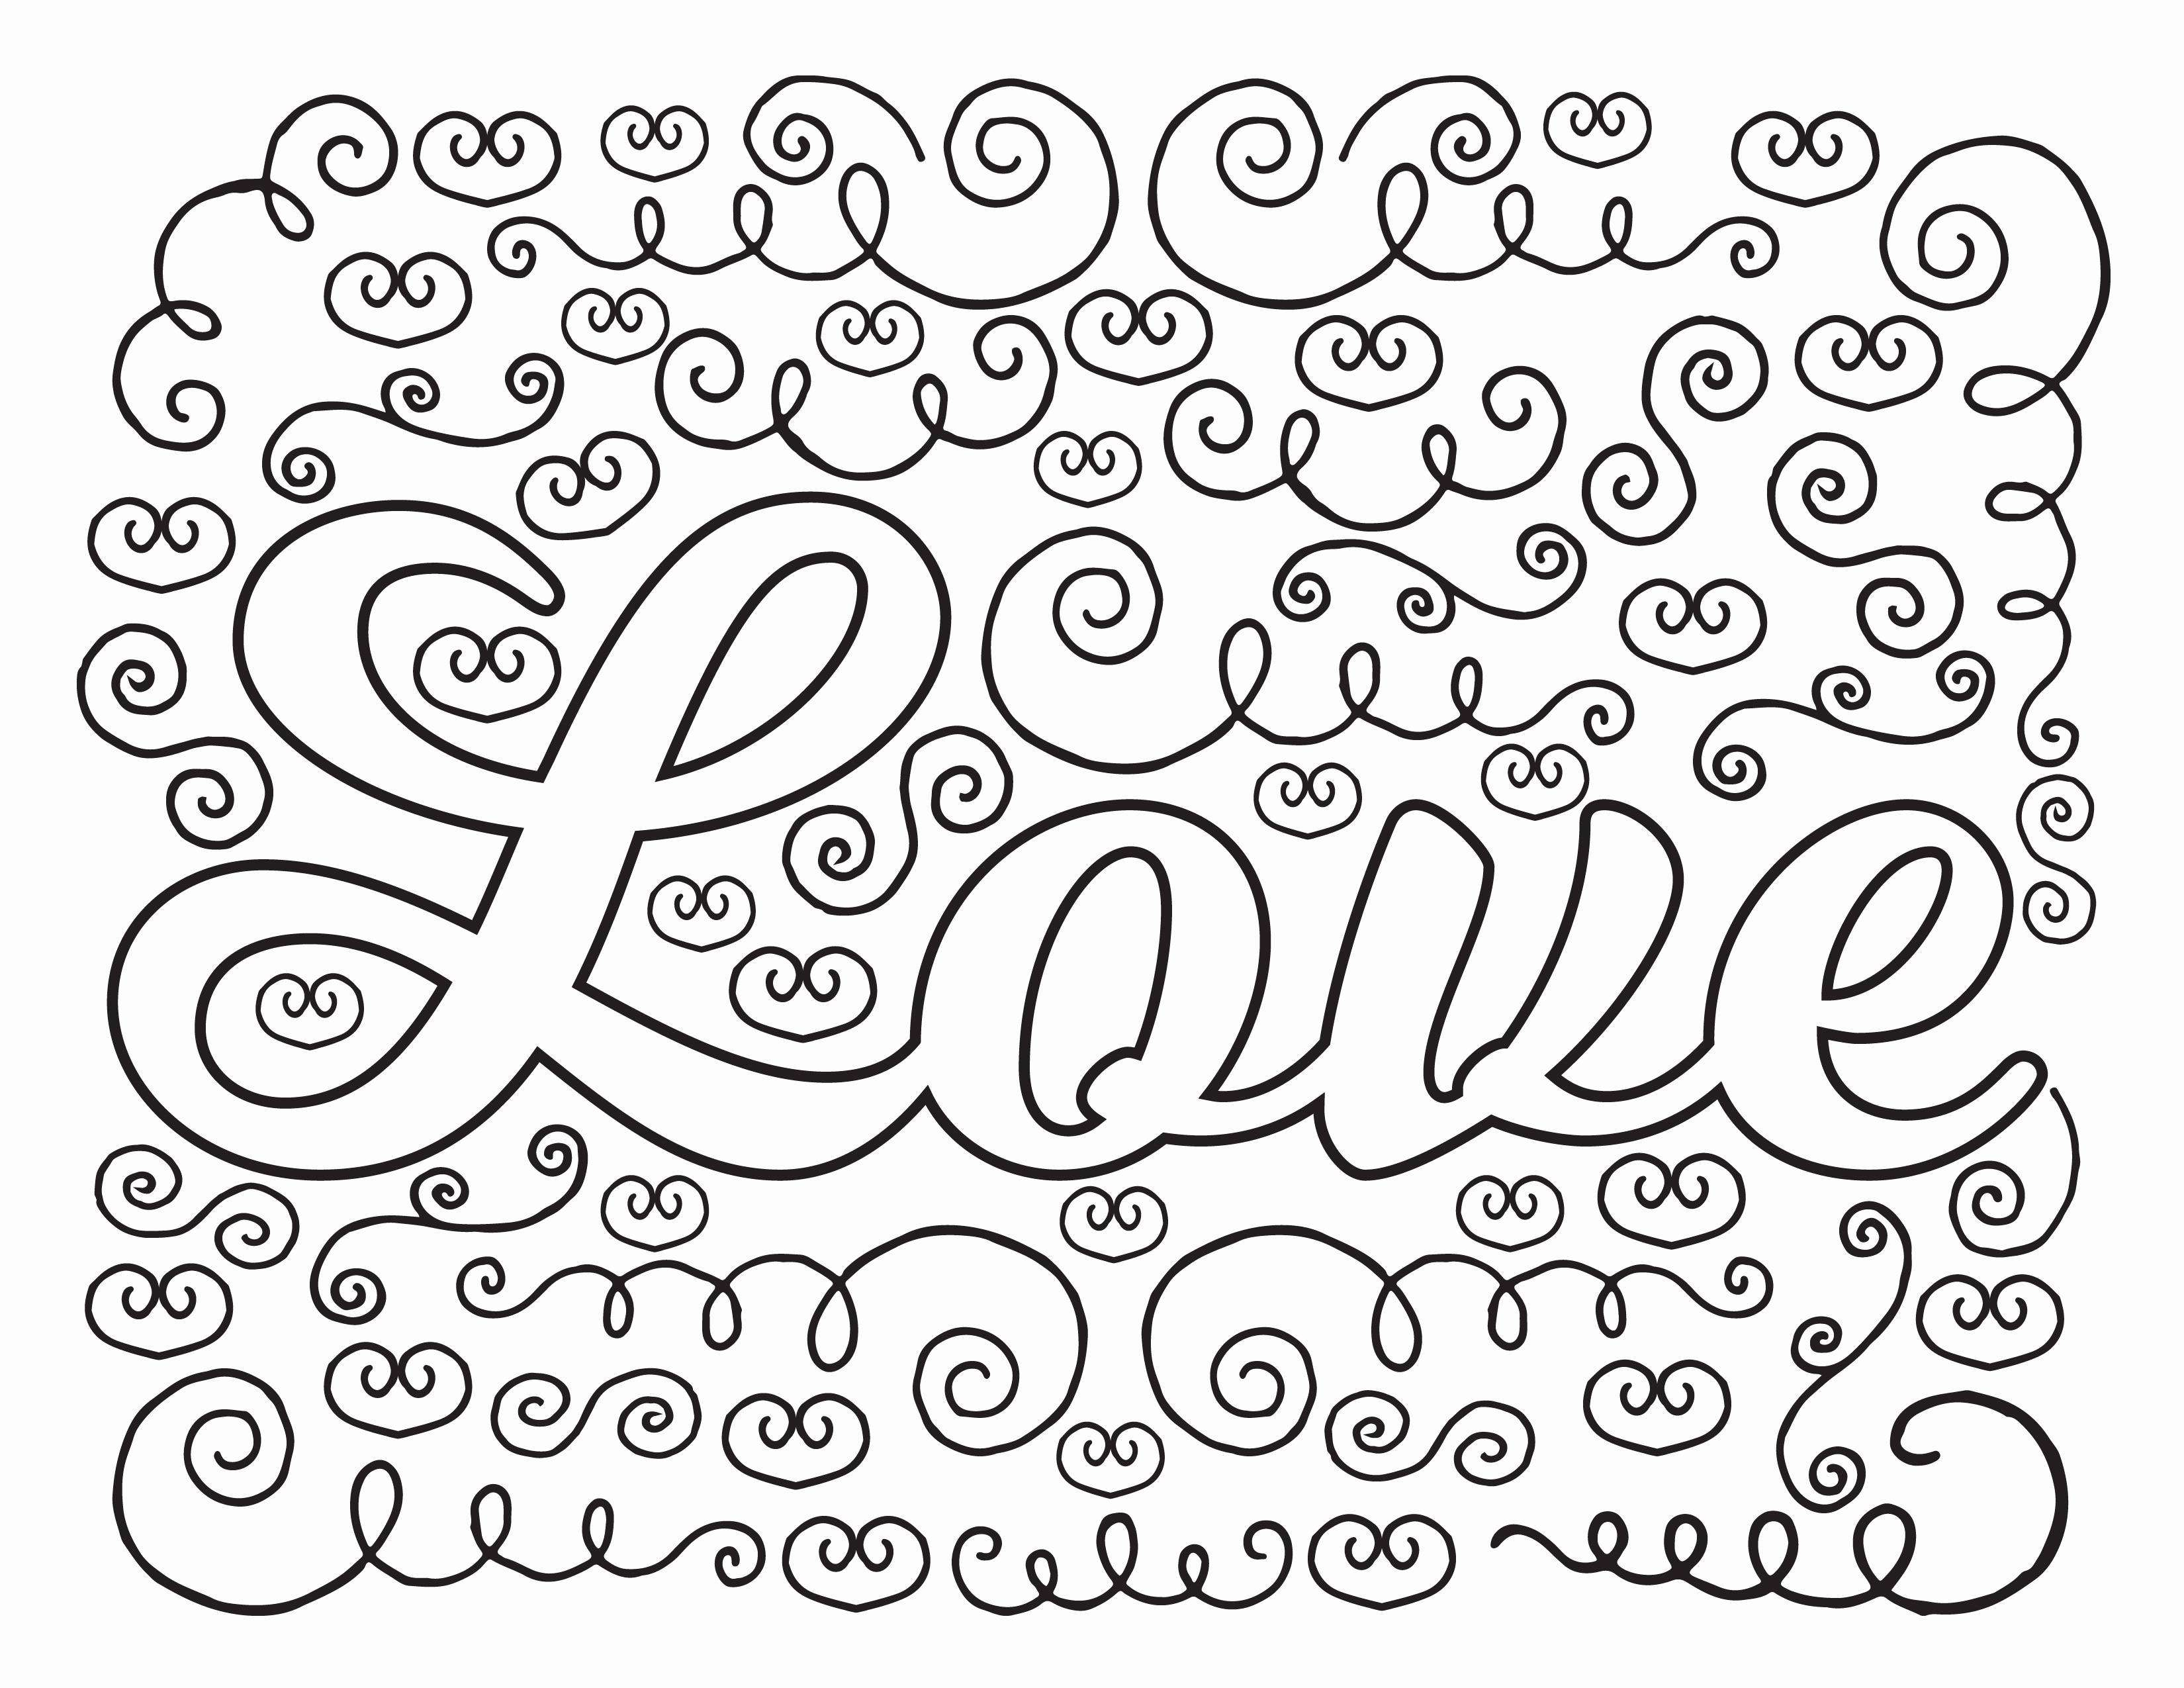 preschoolers coloring pages Download-Pokemon Coloring Pages for Boys Free Free Printable Kids Coloring Pages Beautiful Crayola Pages 0d 15-n